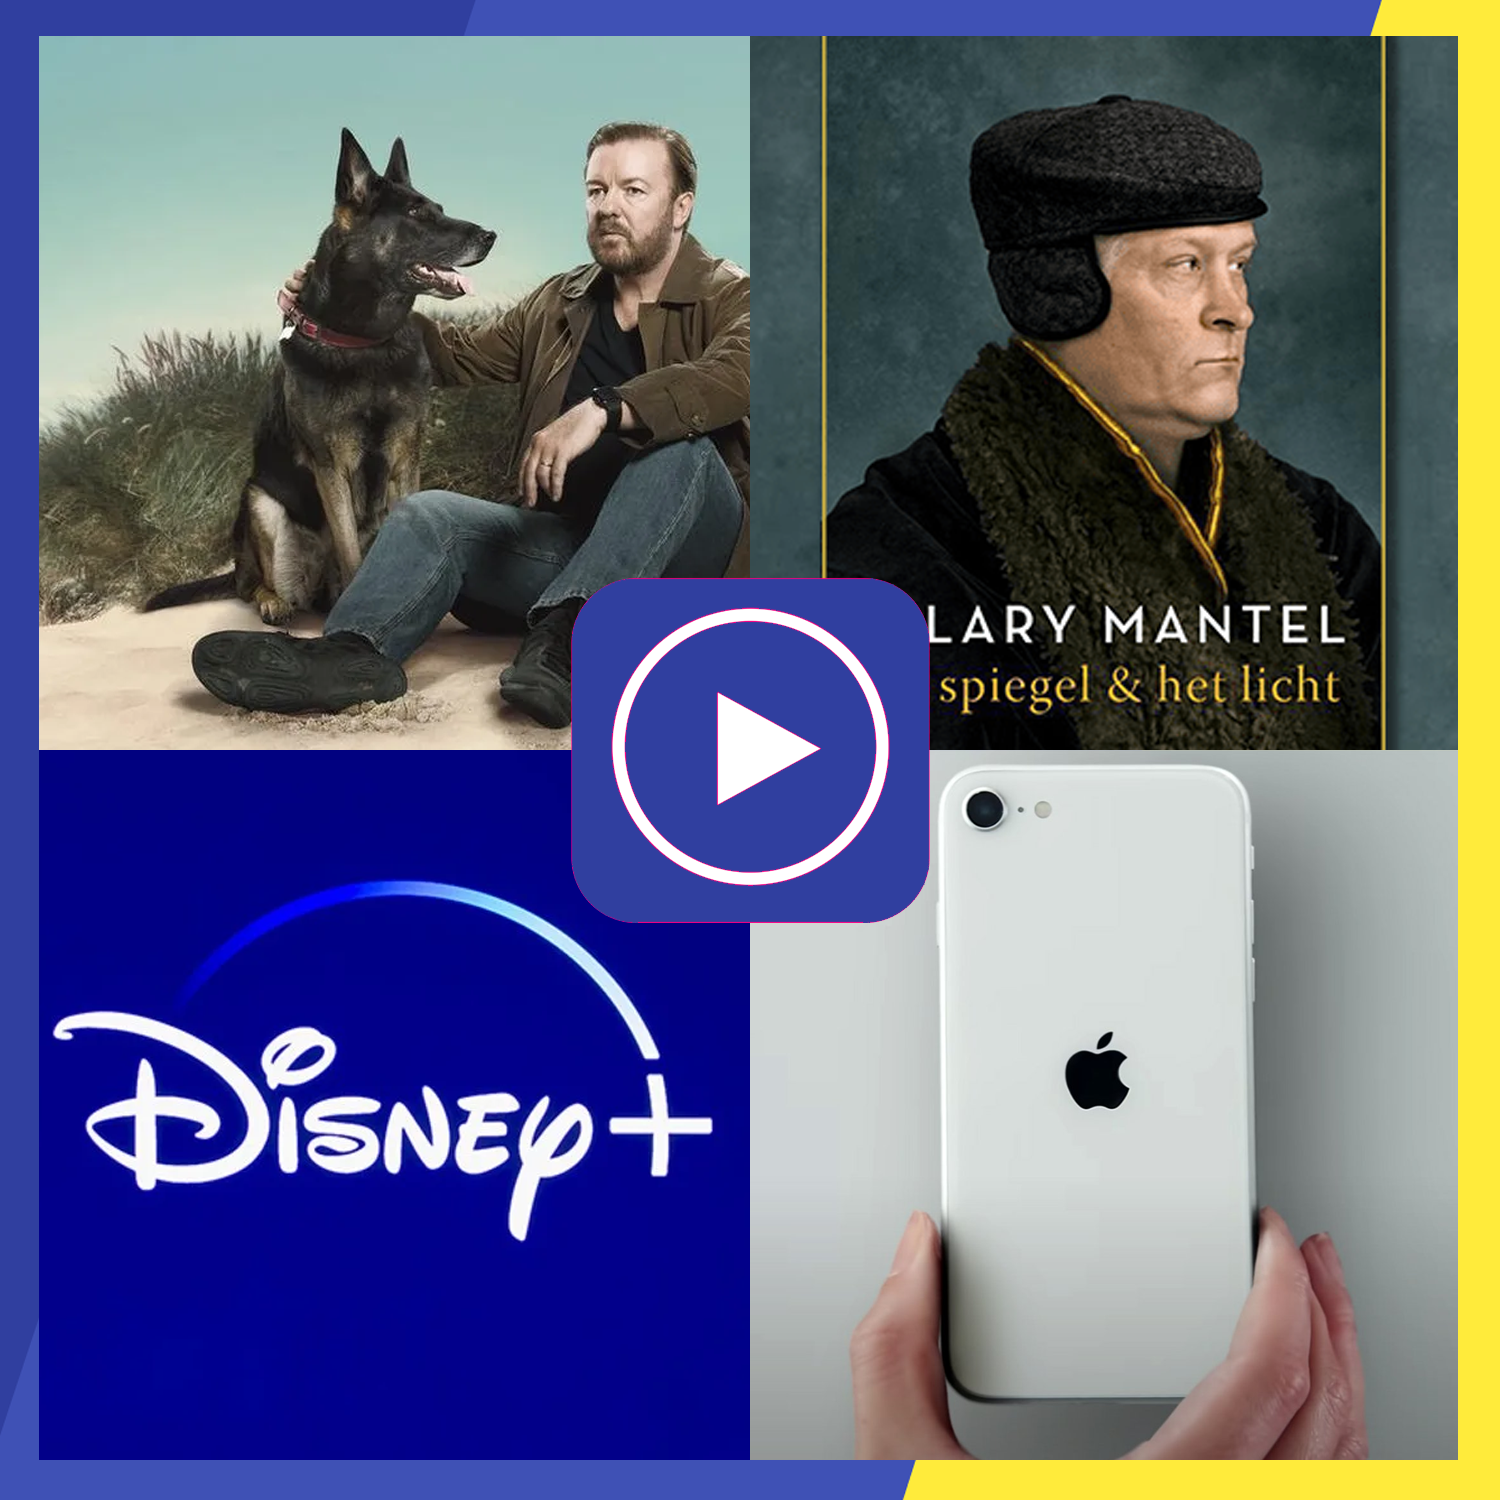 blijfbij podcast vlaanderen belgie after life disney apple mantel